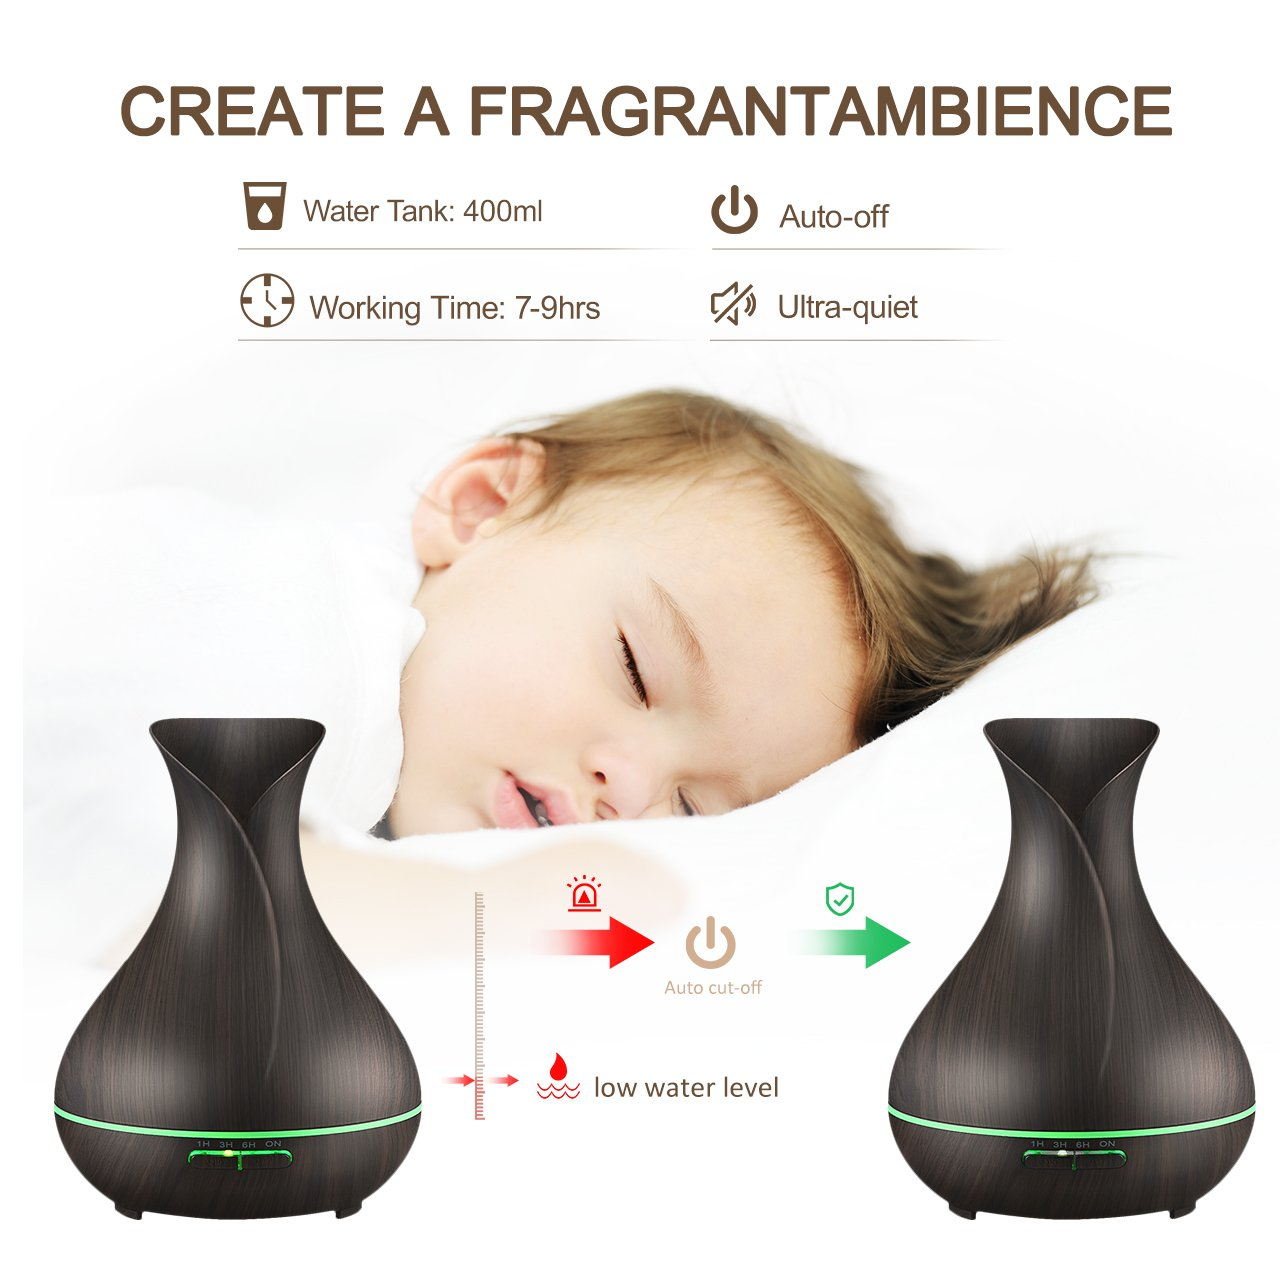 VicTsing 400ml Aromatherapy Essential Oil Diffuser, Ultrasonic Cool Mist Humidifier with Wood Grain Design, 4 Timer Settings for Office, Room, Spa by VicTsing (Image #3)